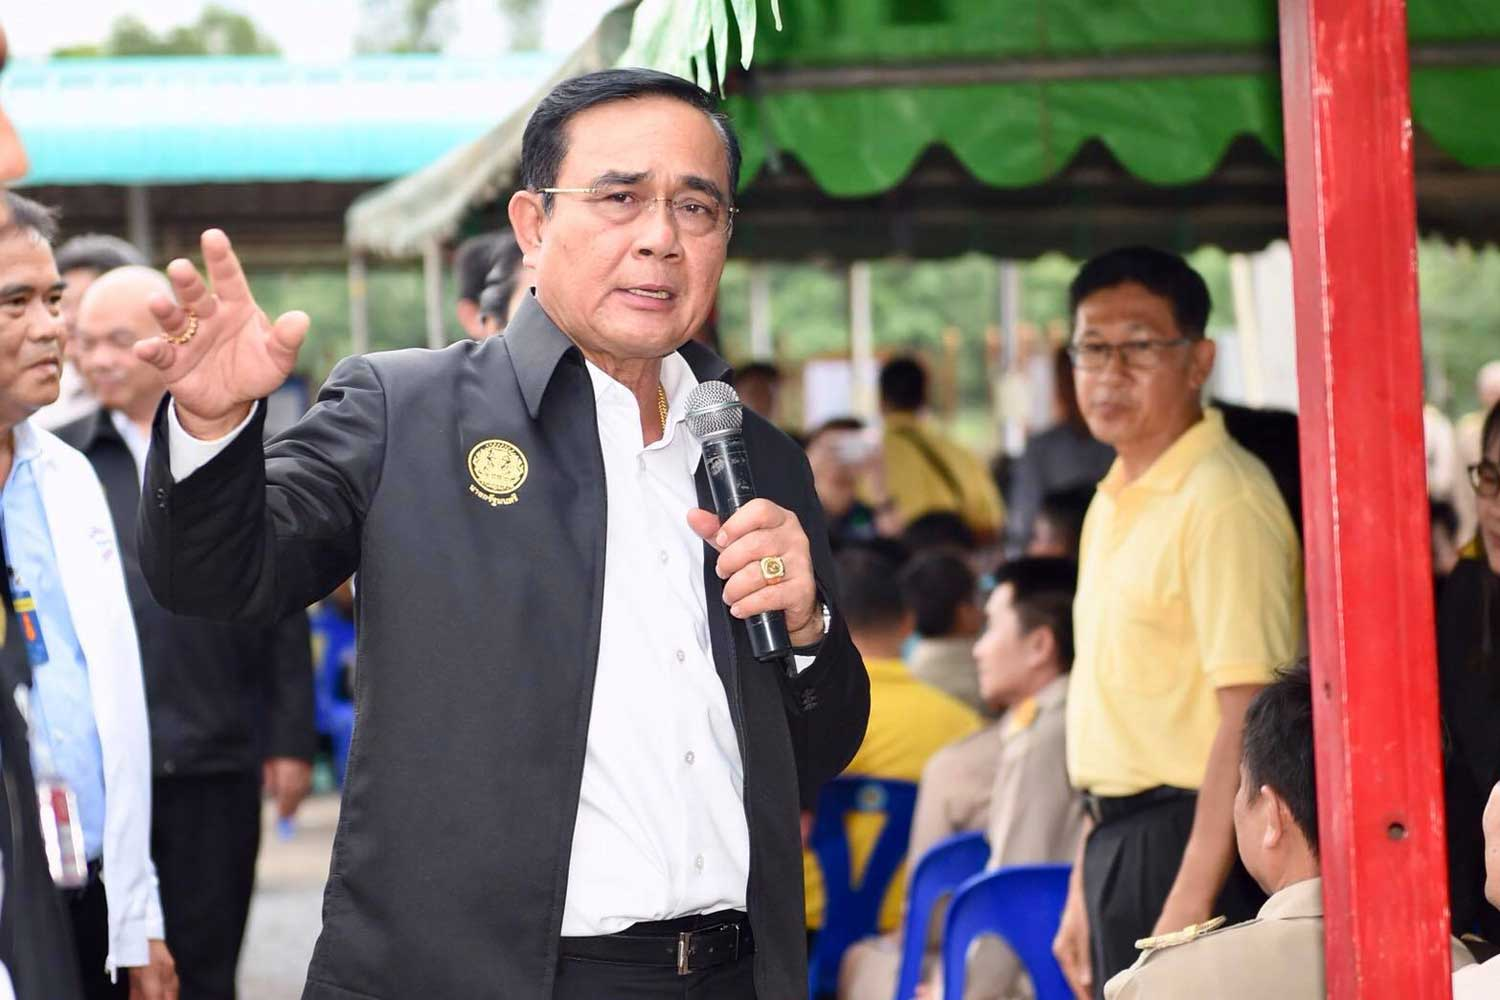 Prime Minister Prayut Chan-o-cha in his flood inspection trip upcountry on Wednesday. (Government House photo)